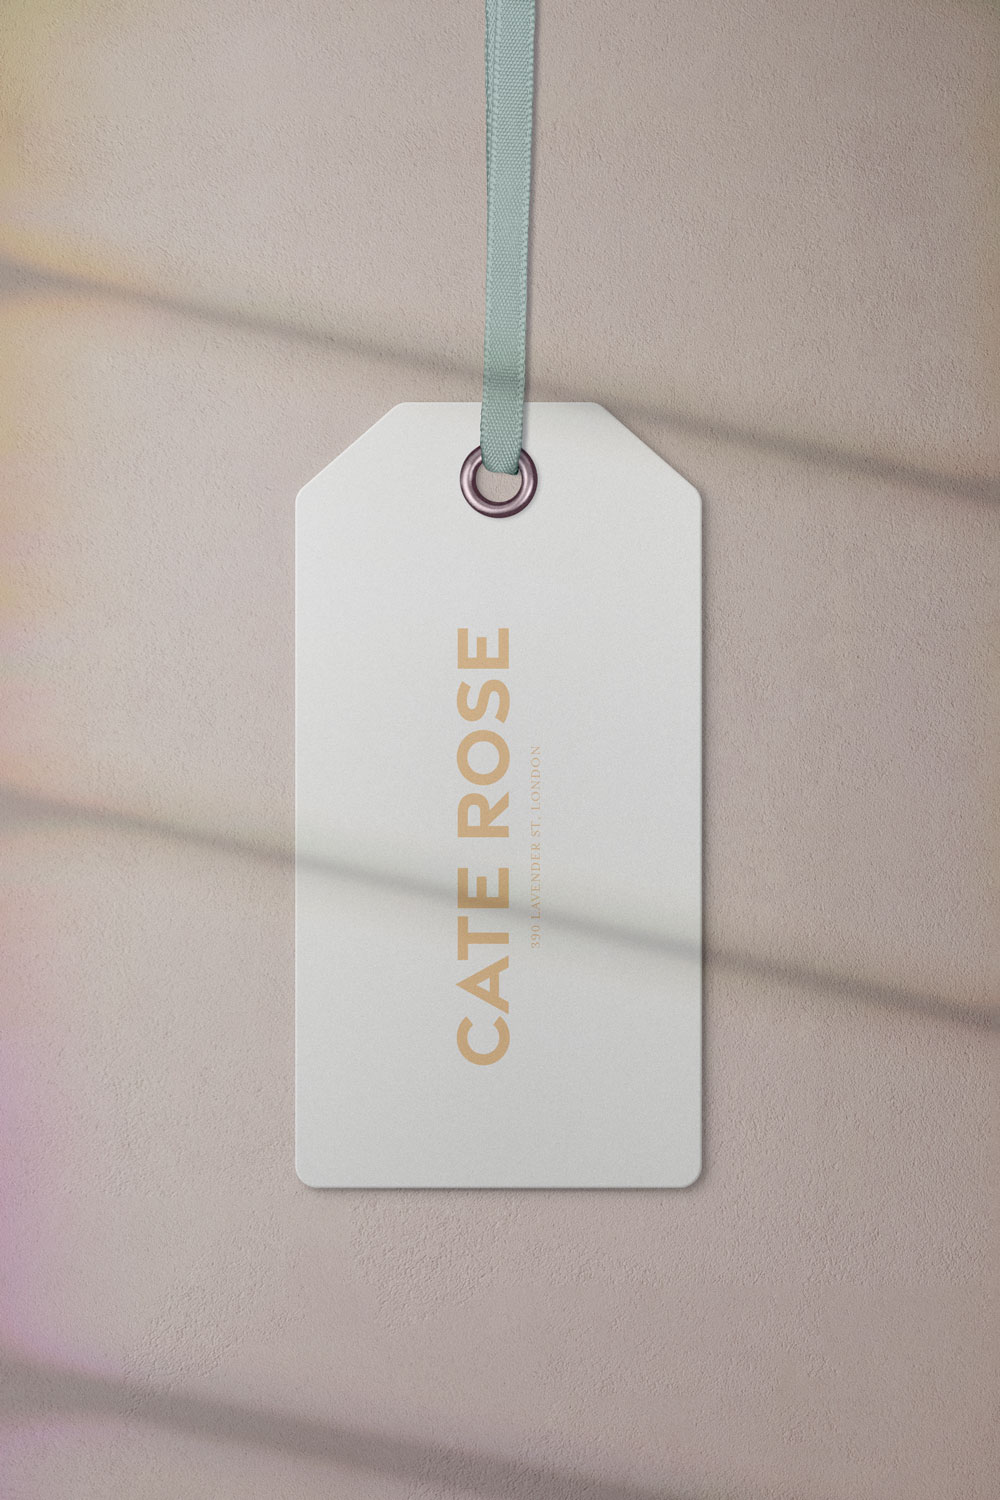 Cate Rose Brand Clothes Tag Mockup by Everything Here Now